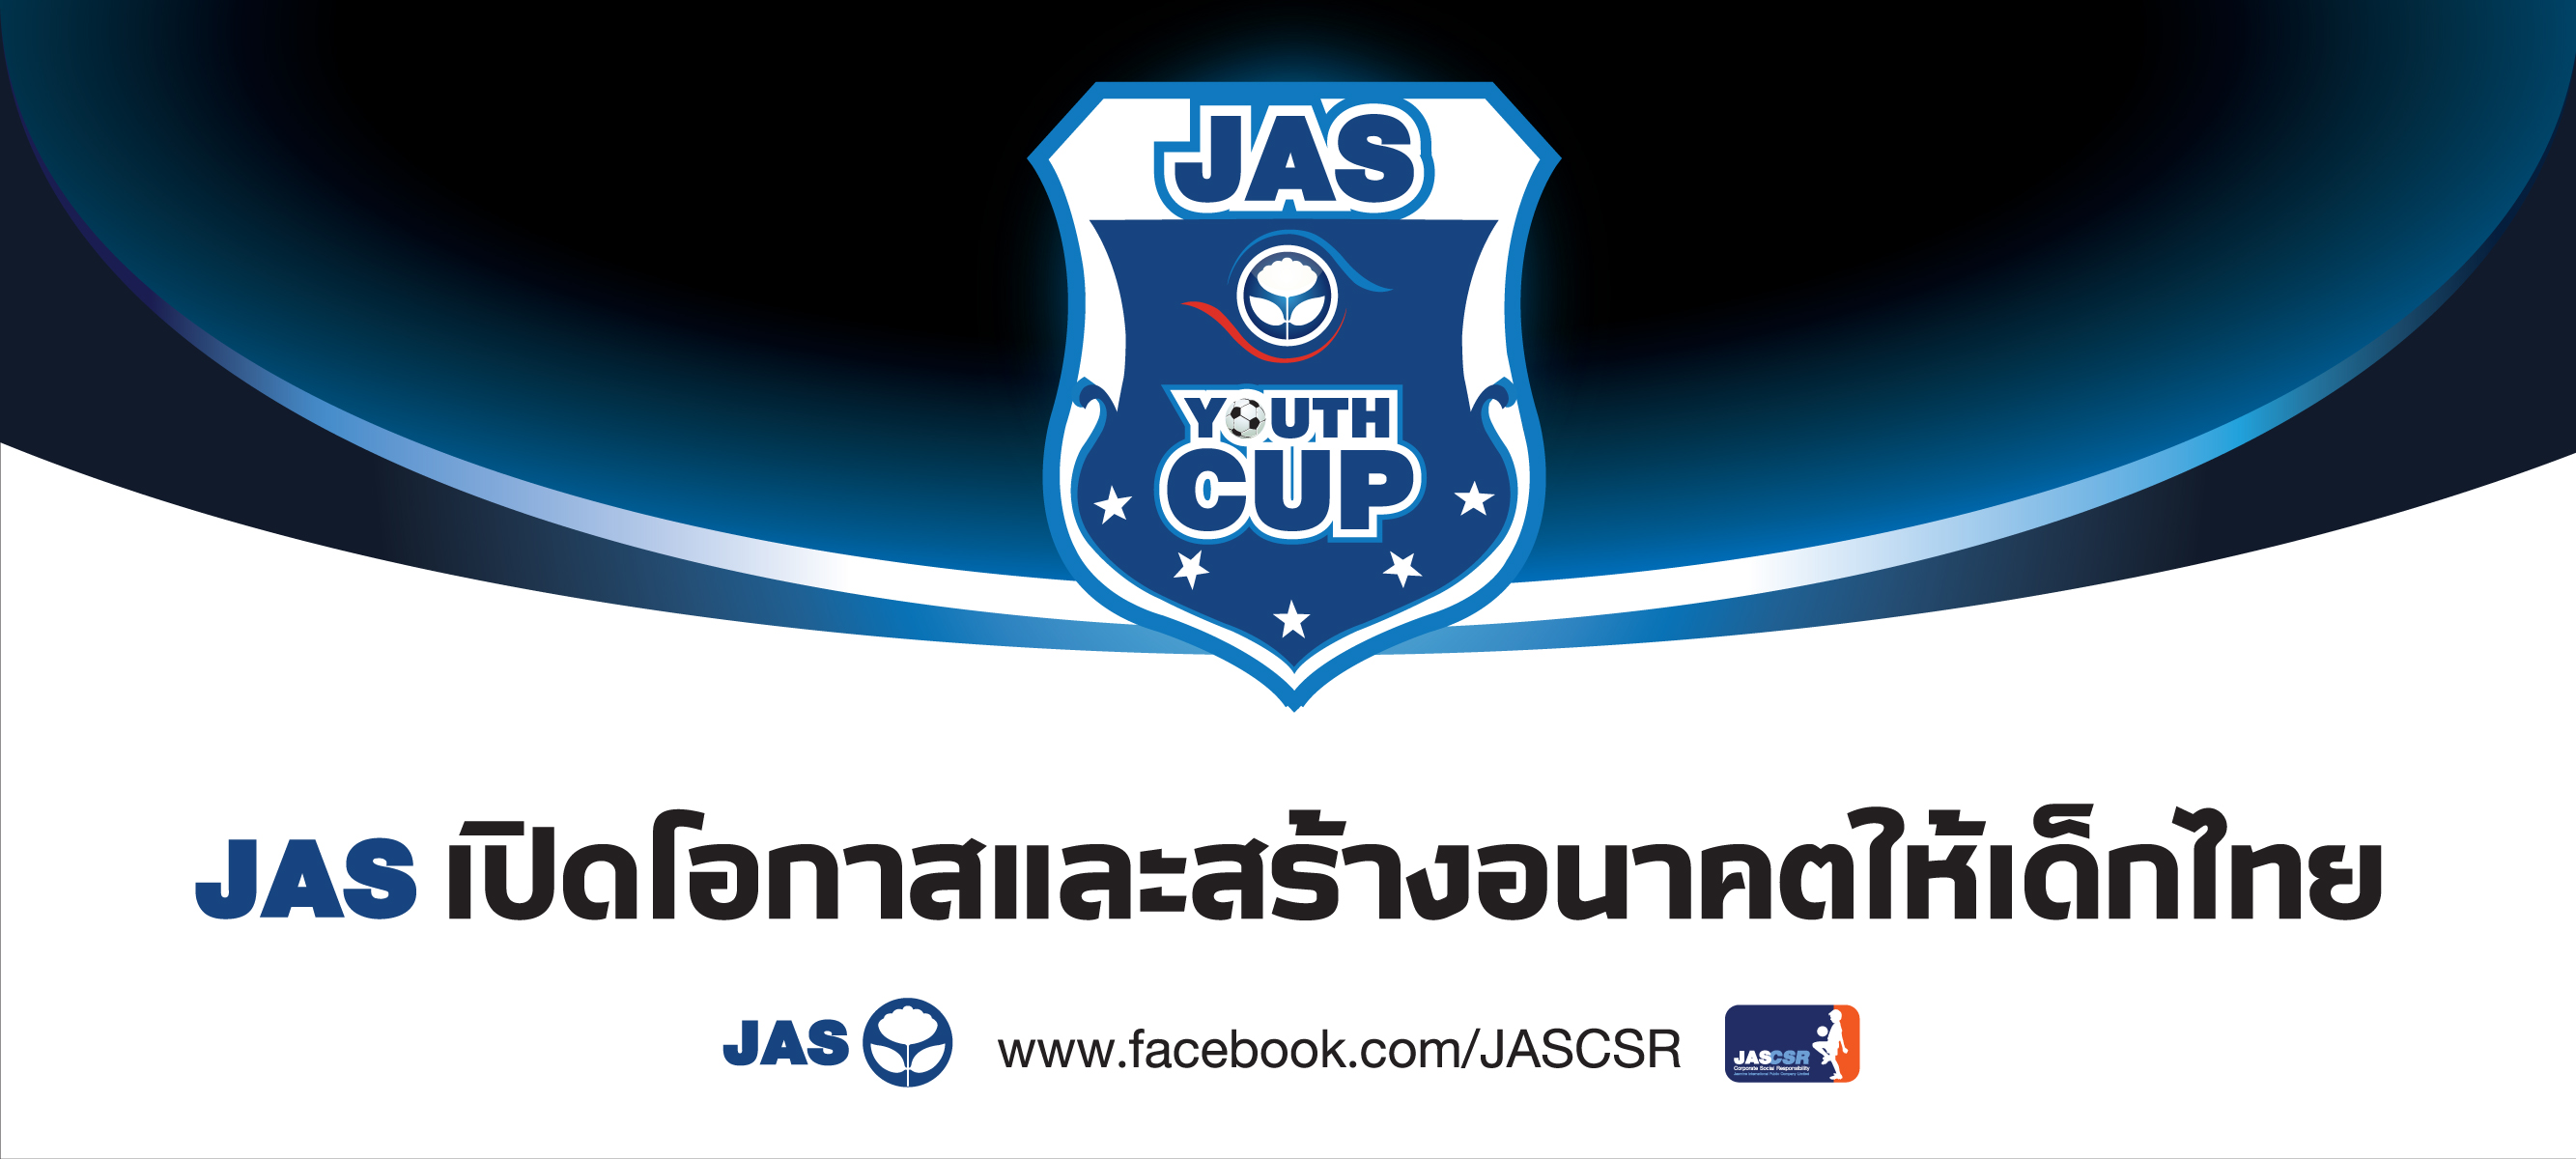 Jas Youth Cup